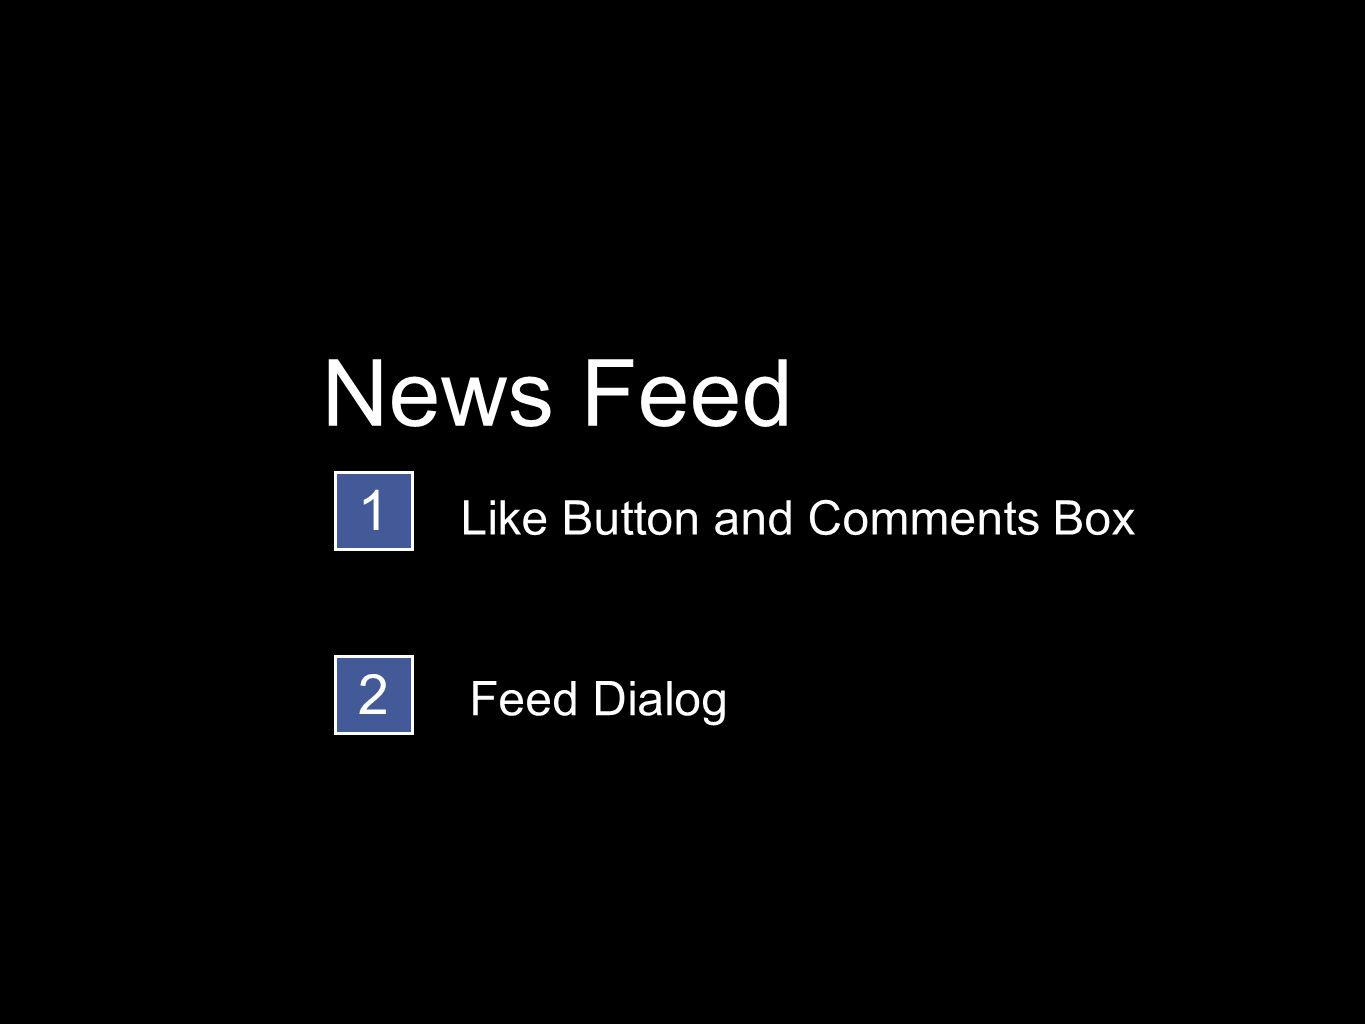 1 2 Like Button and Comments Box Feed Dialog